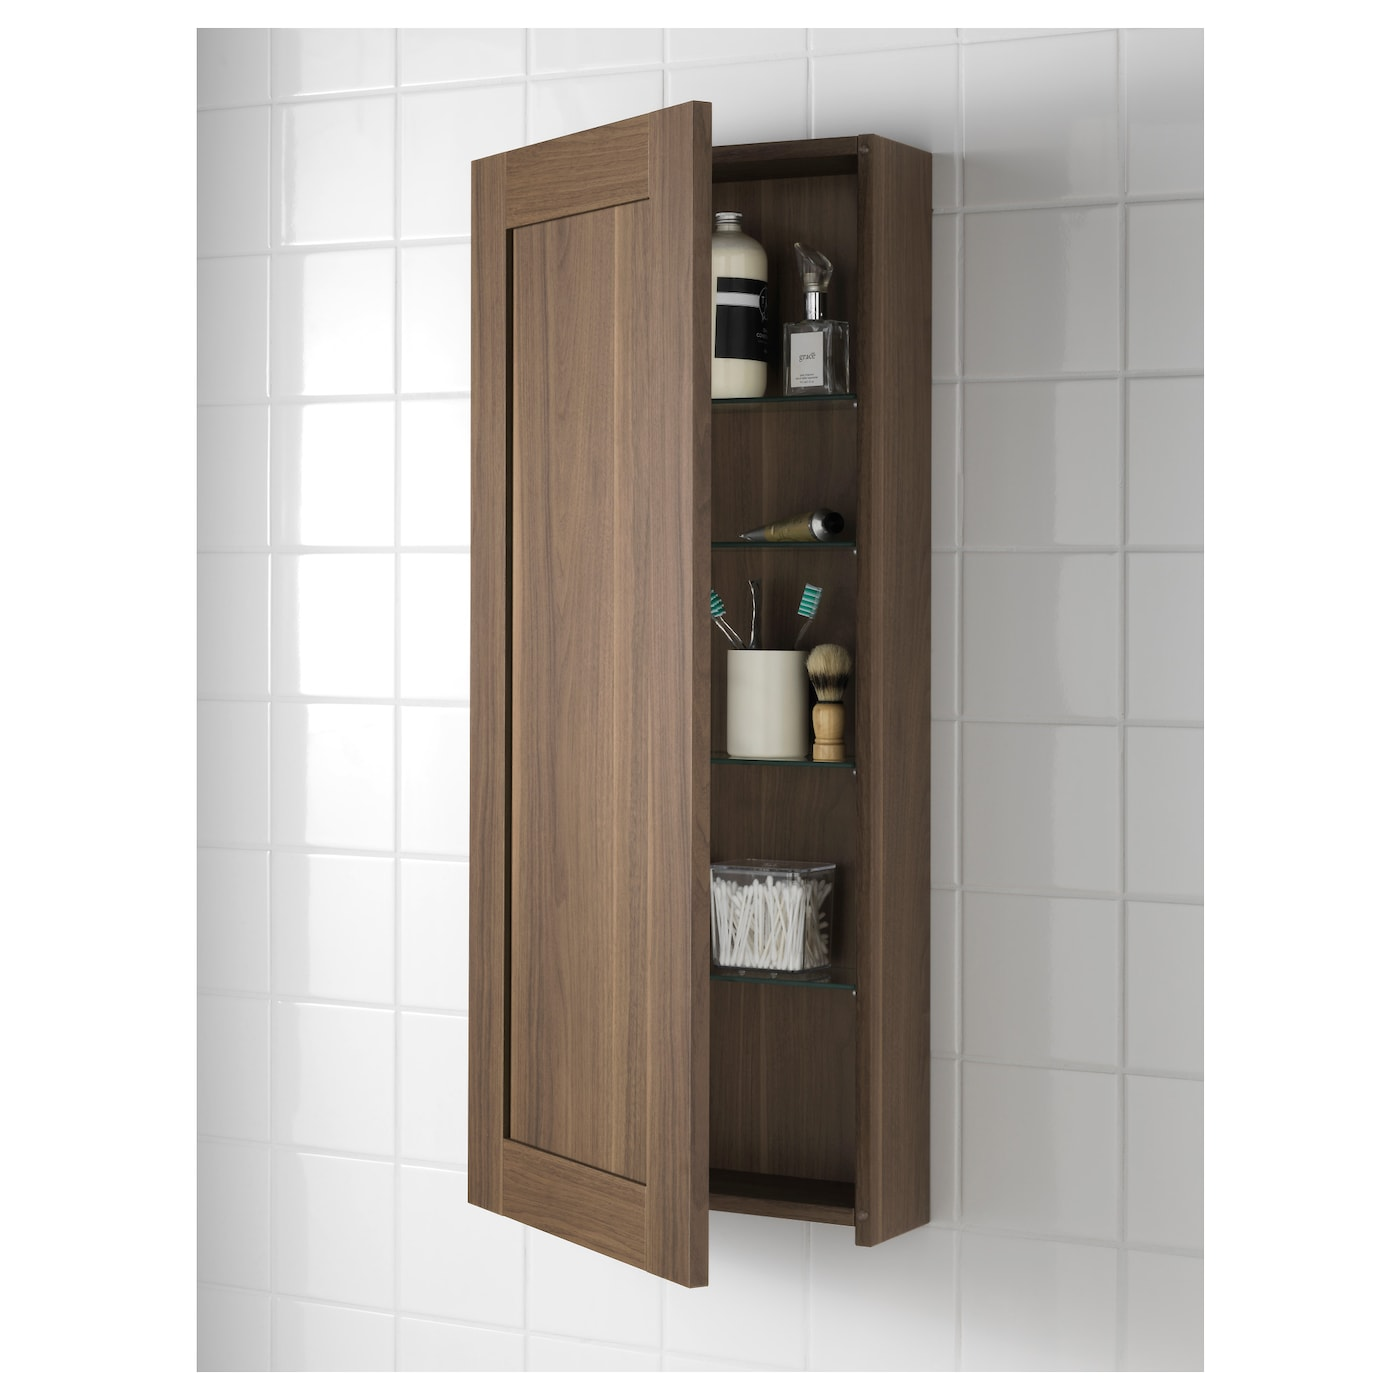 wall cabinets for bathroom storage godmorgon wall cabinet with 1 door walnut effect 40 x 14 x 24521